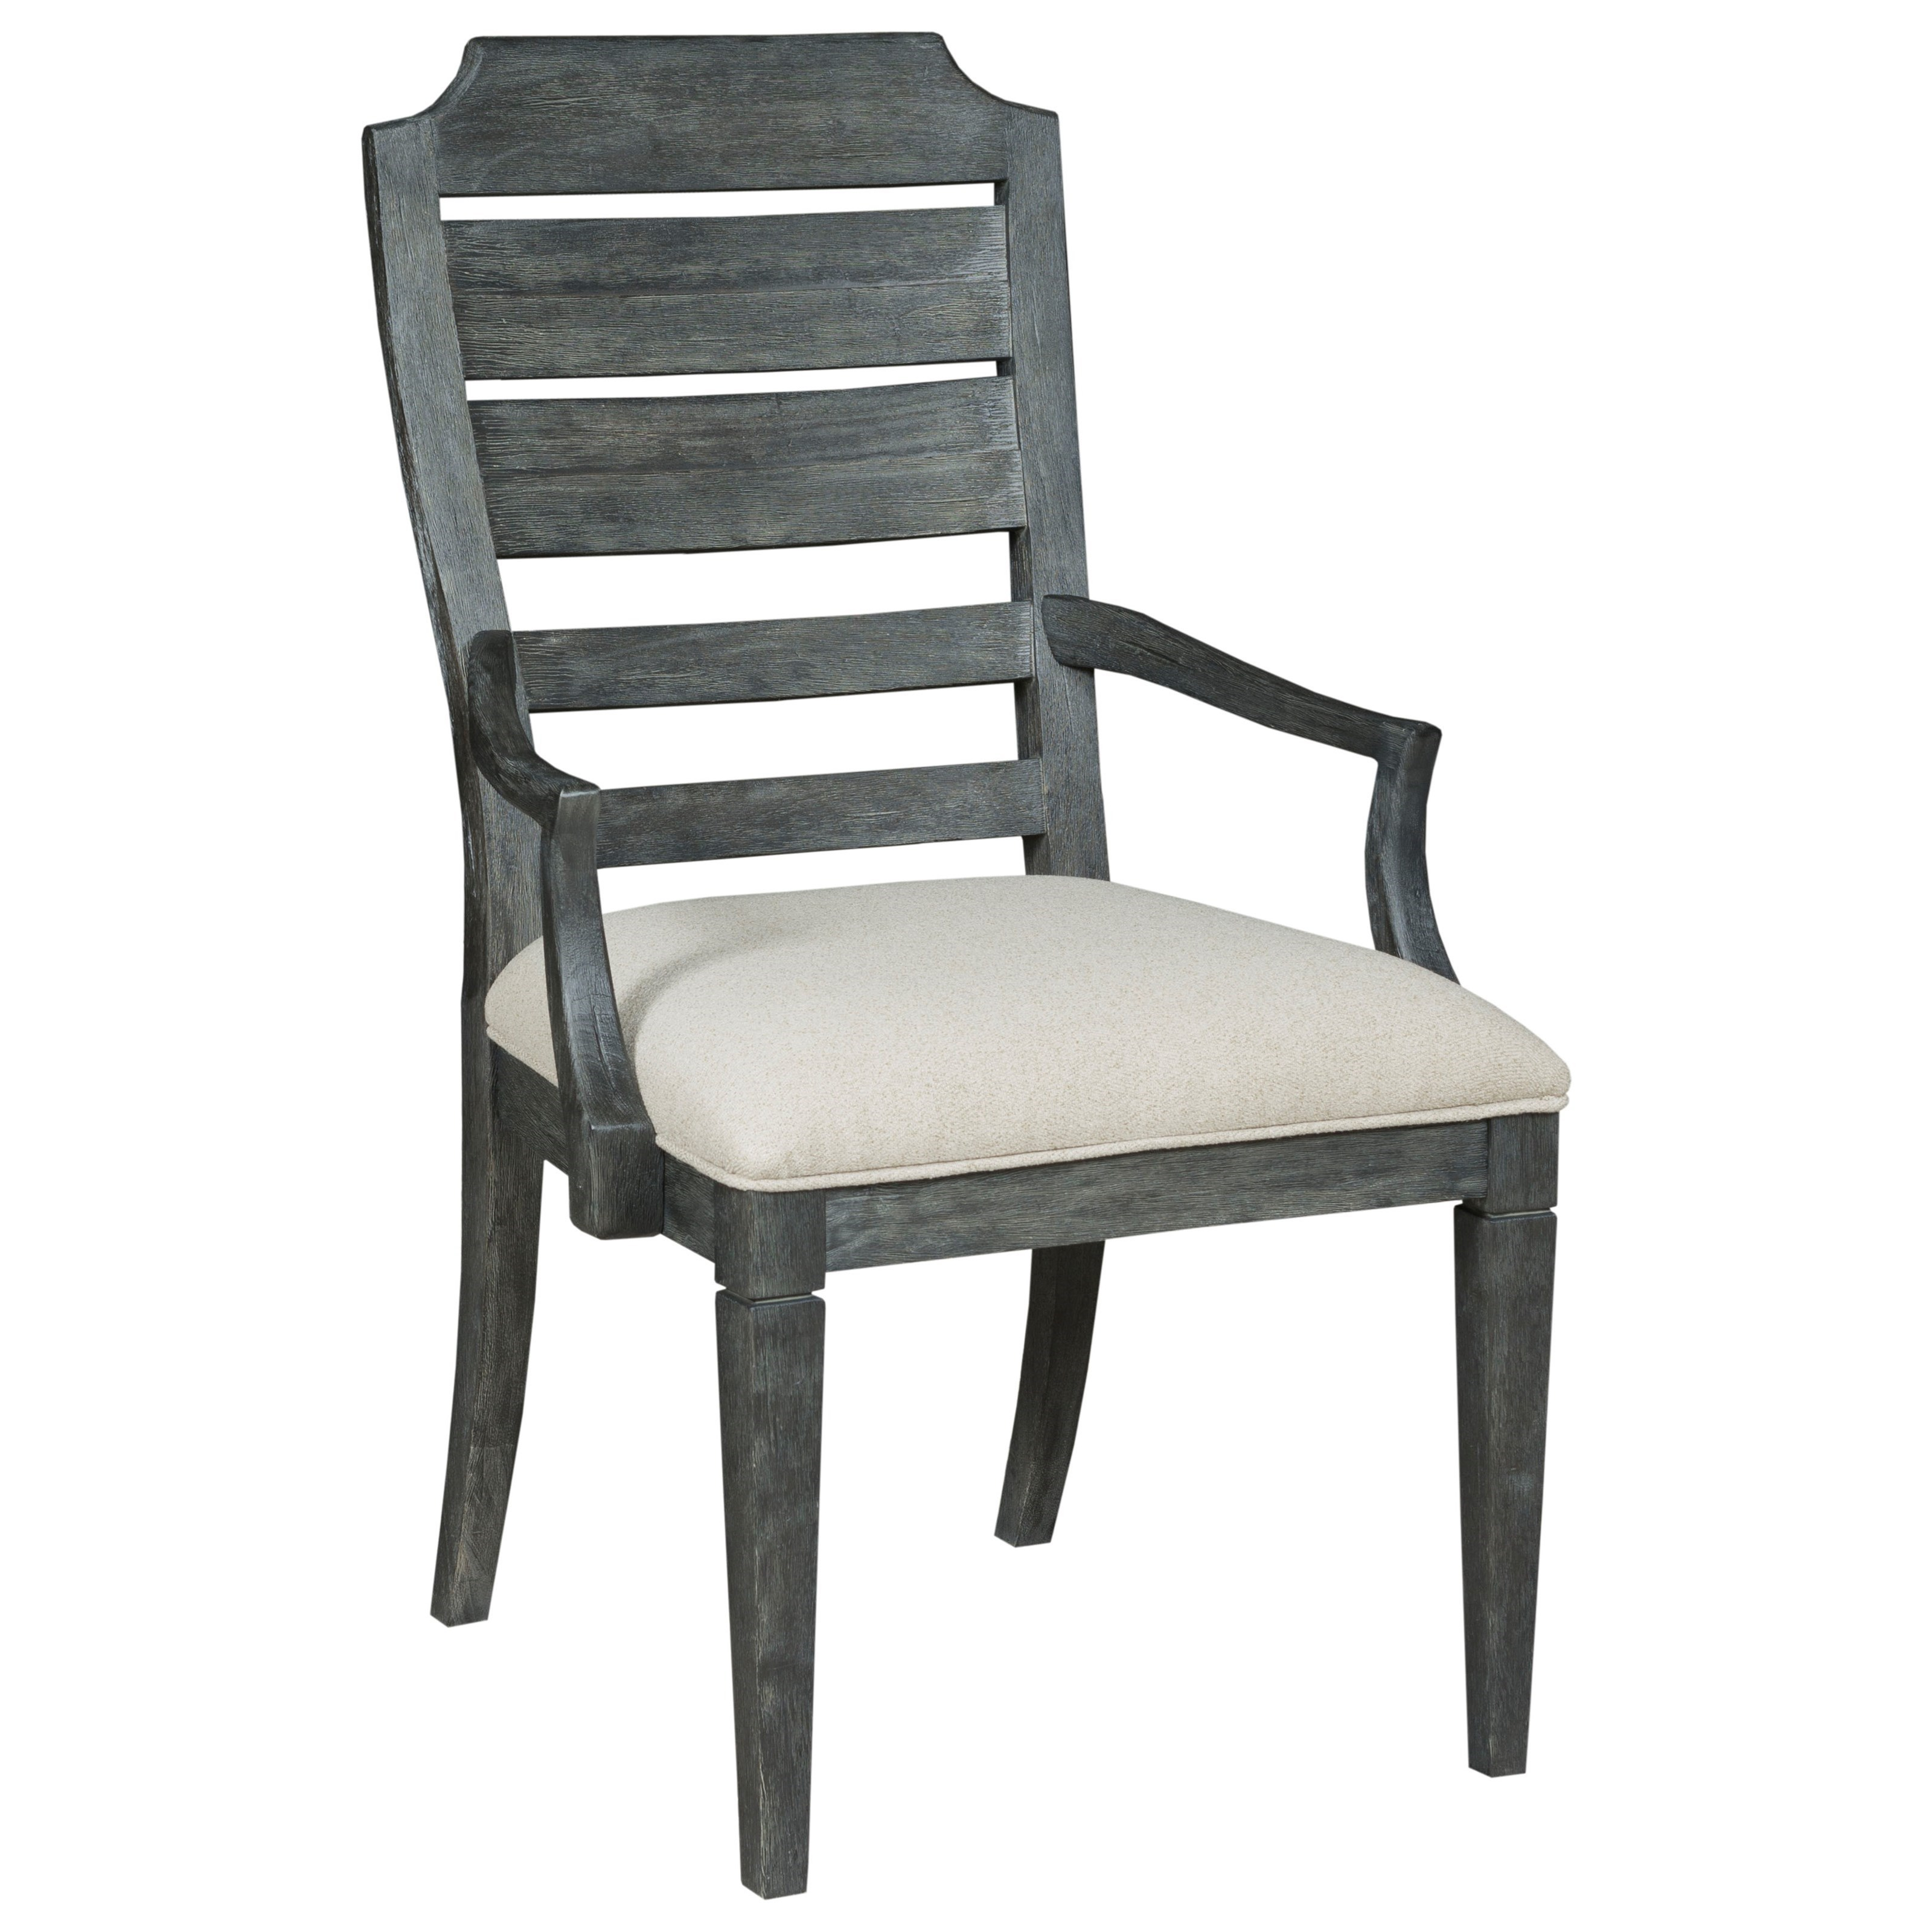 Trails Erwin Arm Chair by Kincaid Furniture at Johnny Janosik